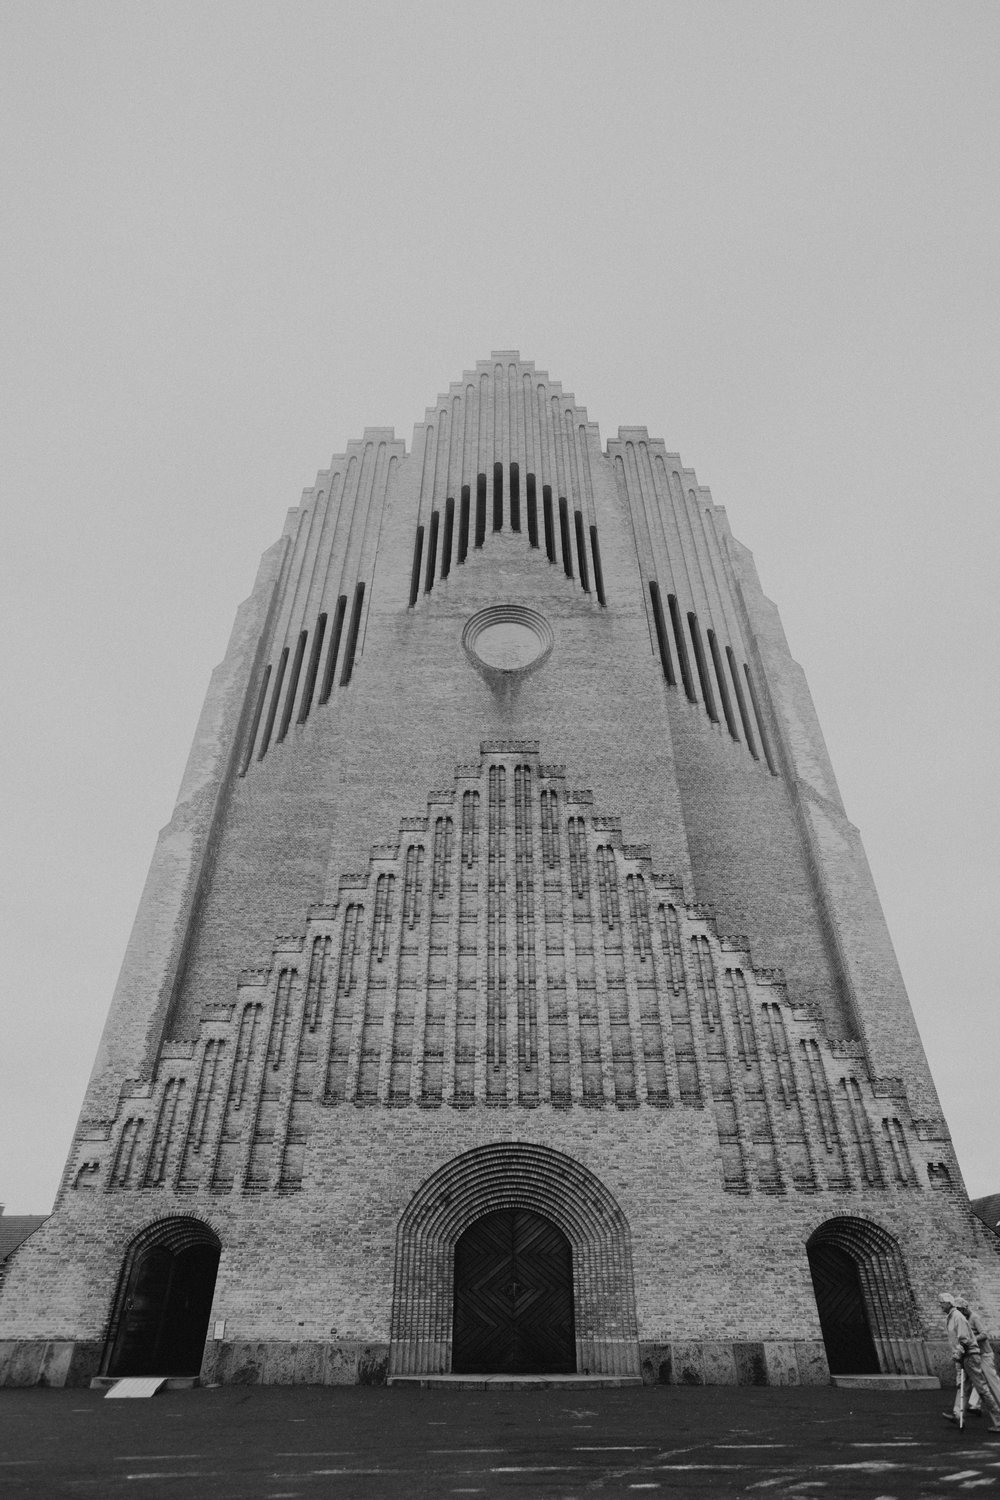 making up for not seeing this architectural masterpiece last time around. grundtvig's church